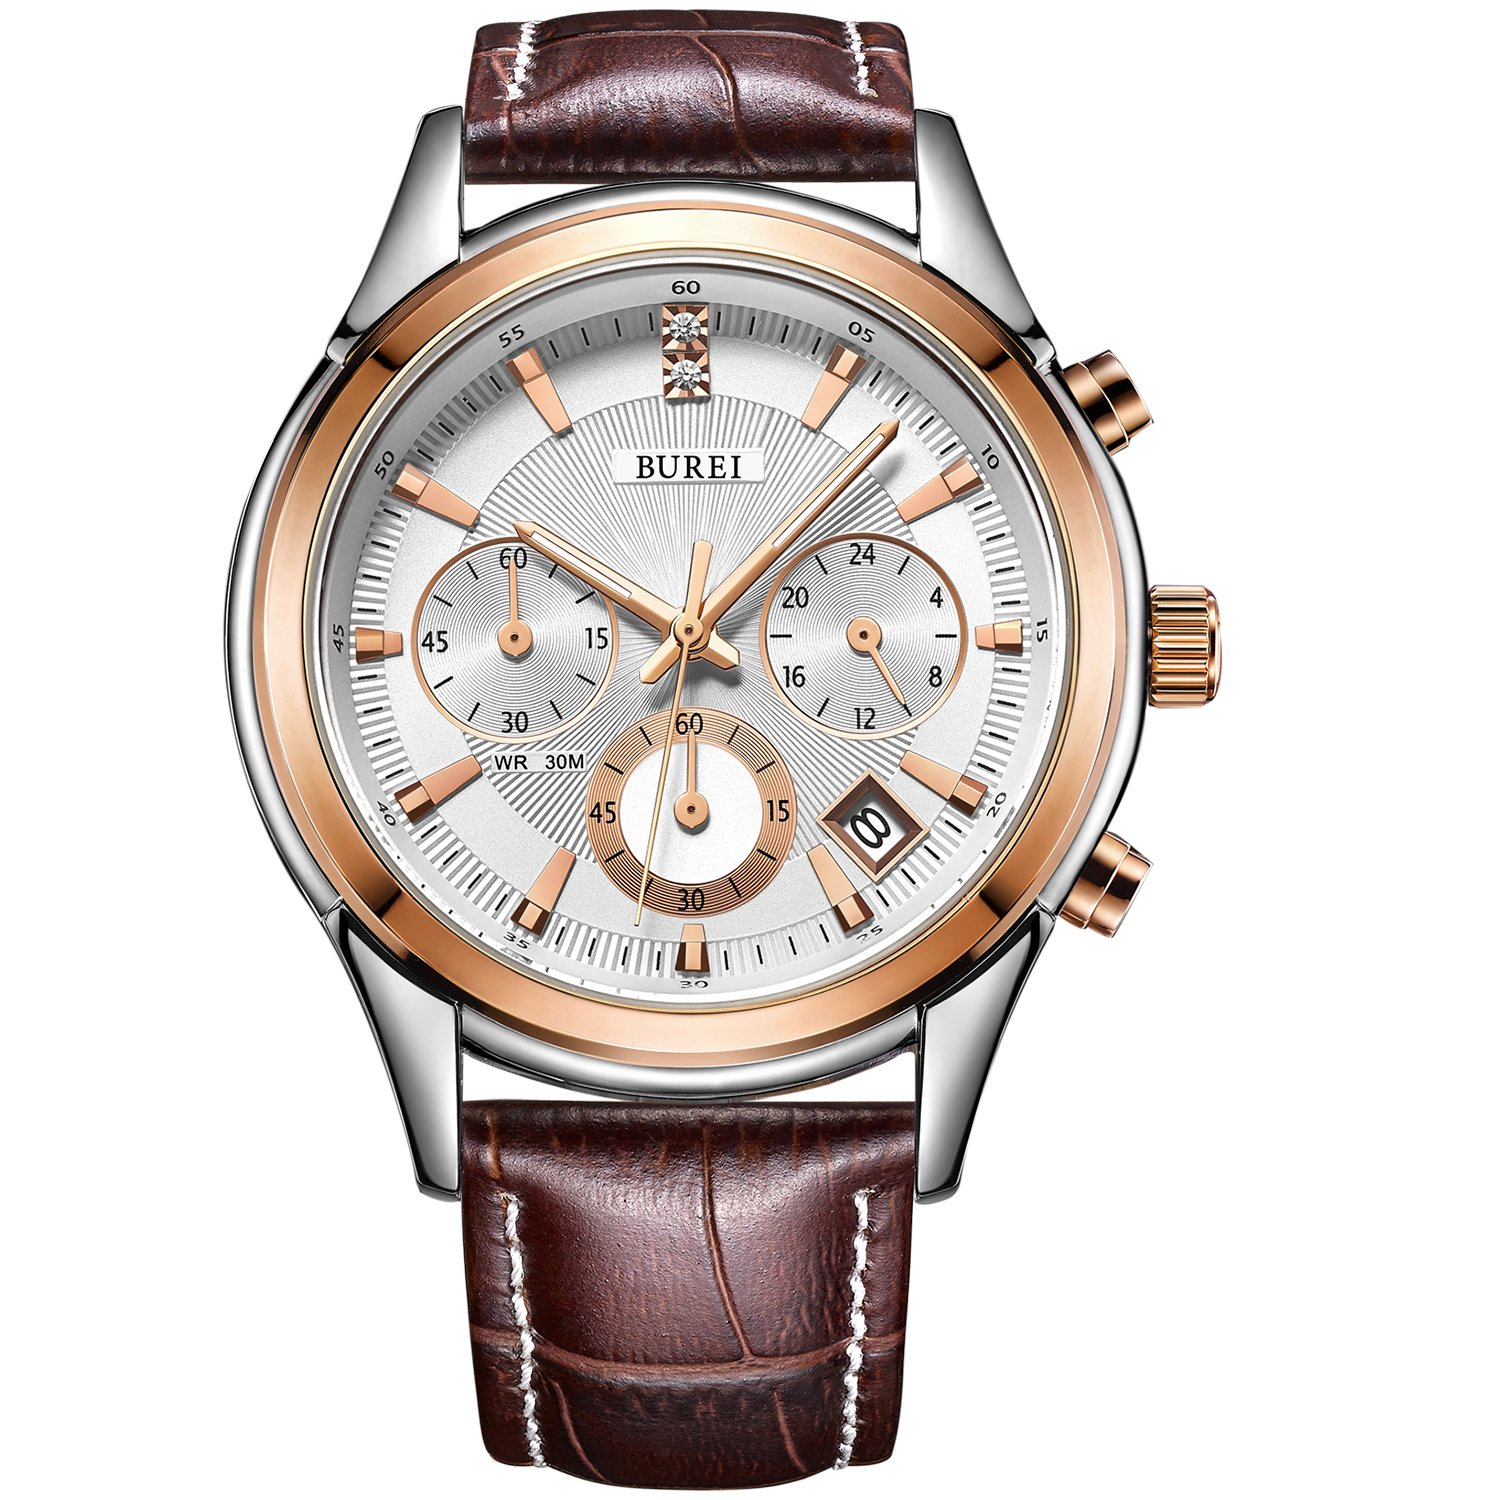 BUREI Men's Watch Rose Gold Chronograph Quartz Mineral Lens with Date and Brown Genuine Leather Strap by BUREI